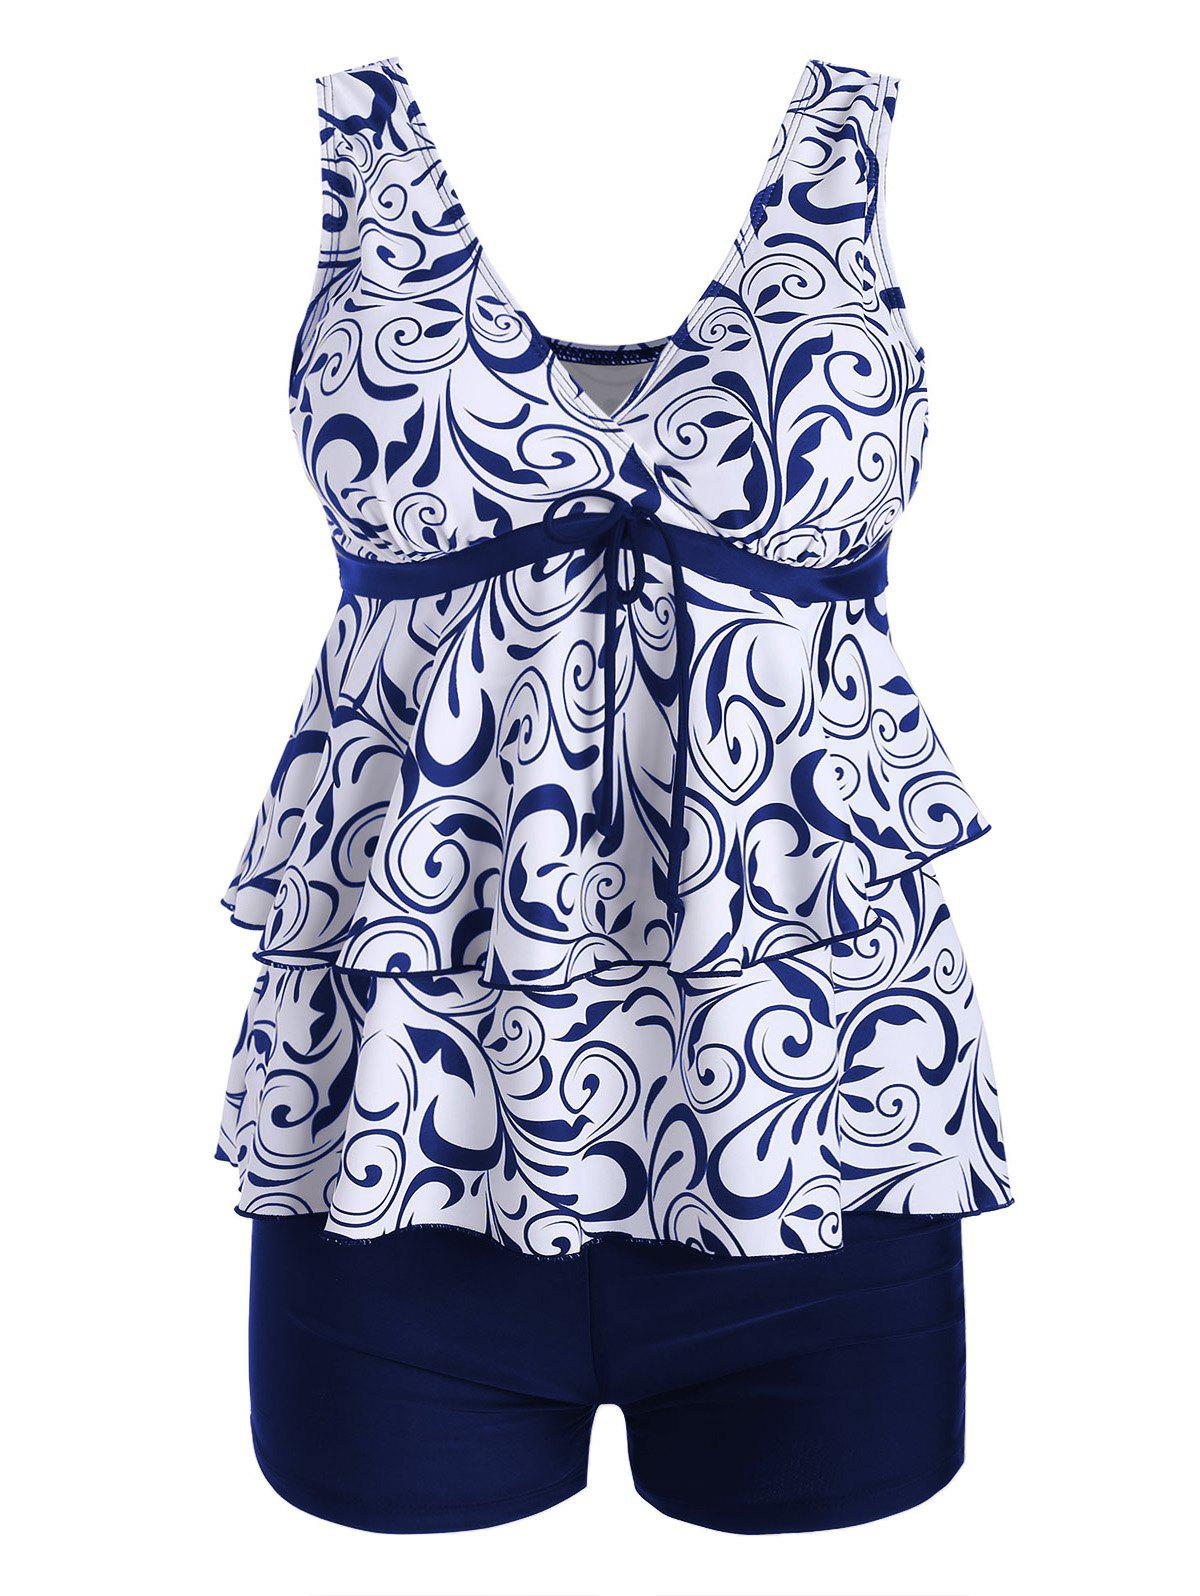 Plus Size Flounce Printed Blouson Tankini SetWOMEN<br><br>Size: XL; Color: BLUE; Gender: For Women; Swimwear Type: Tankini; Material: Nylon,Spandex; Bra Style: Padded; Support Type: Wire Free; Pattern Type: Print; Waist: Natural; Weight: 0.3500kg; Package Contents: 1 x Top  1 x Bottom;